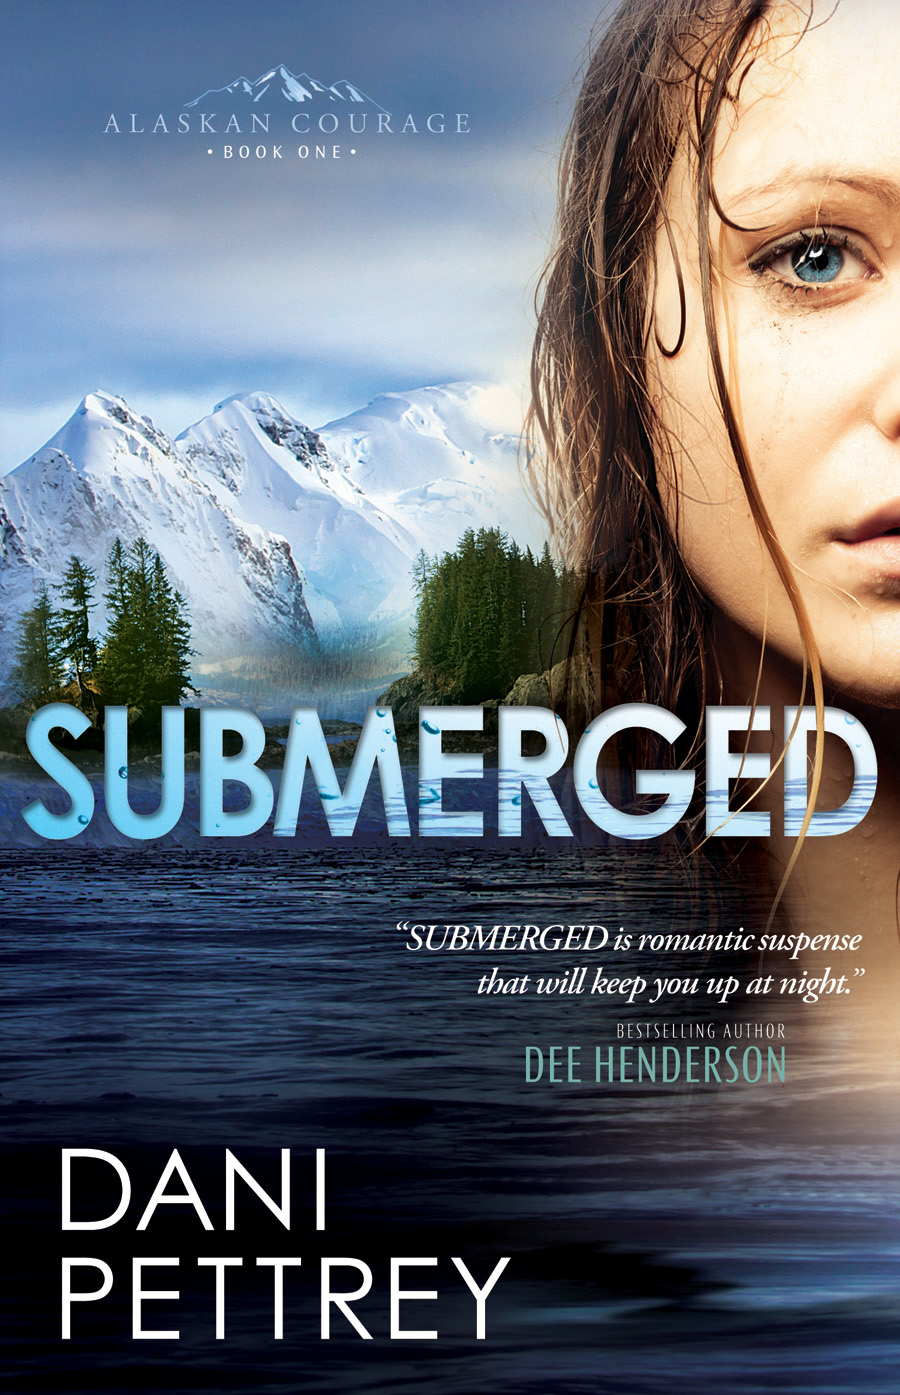 Submerged (Alaskan Courage Book #1) By: Dani Pettrey